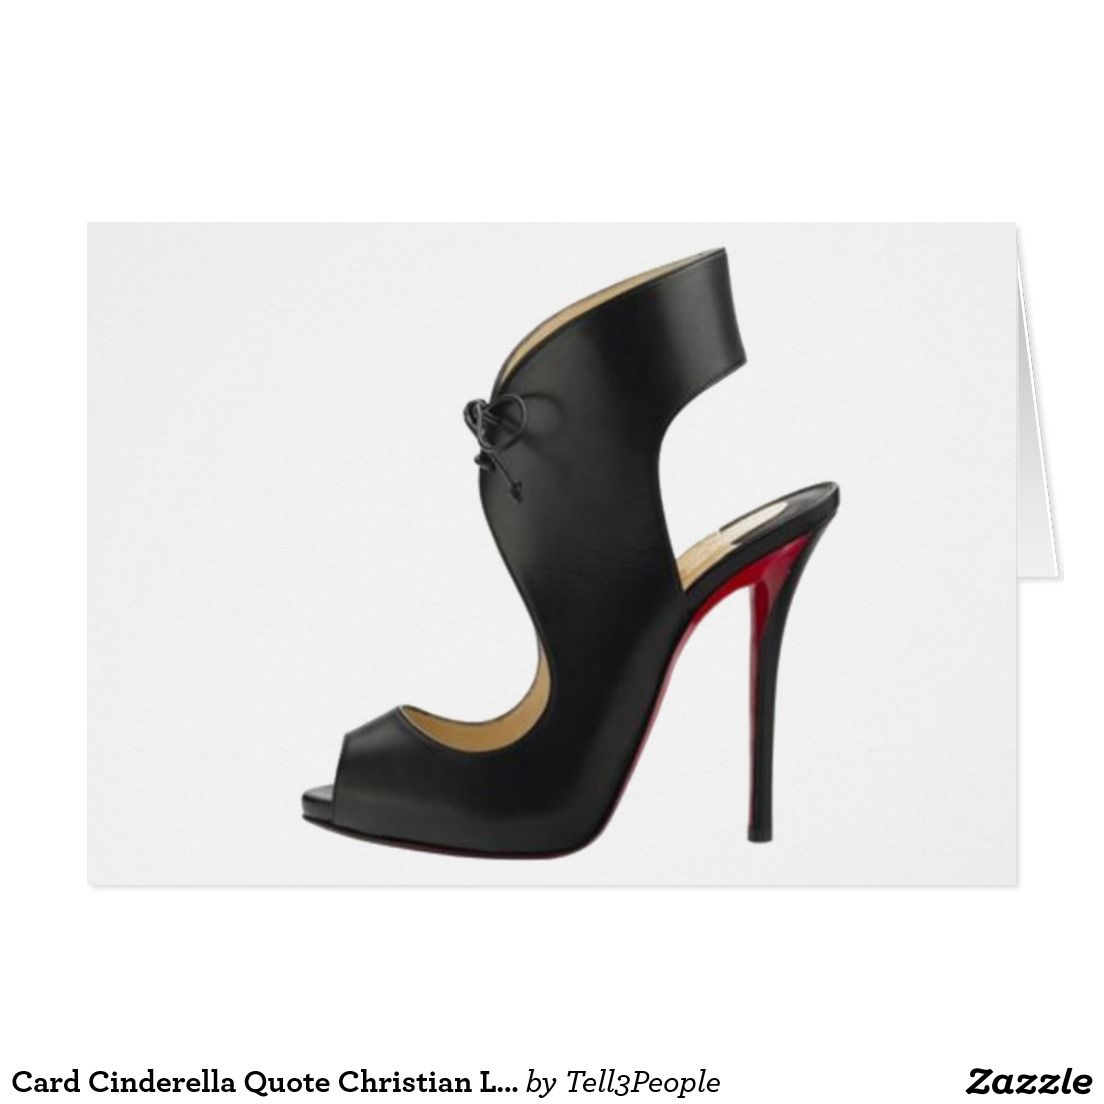 6505ef2169d9 ... canada card cinderella quote christian louboutin shoes 9cfa5 8513b